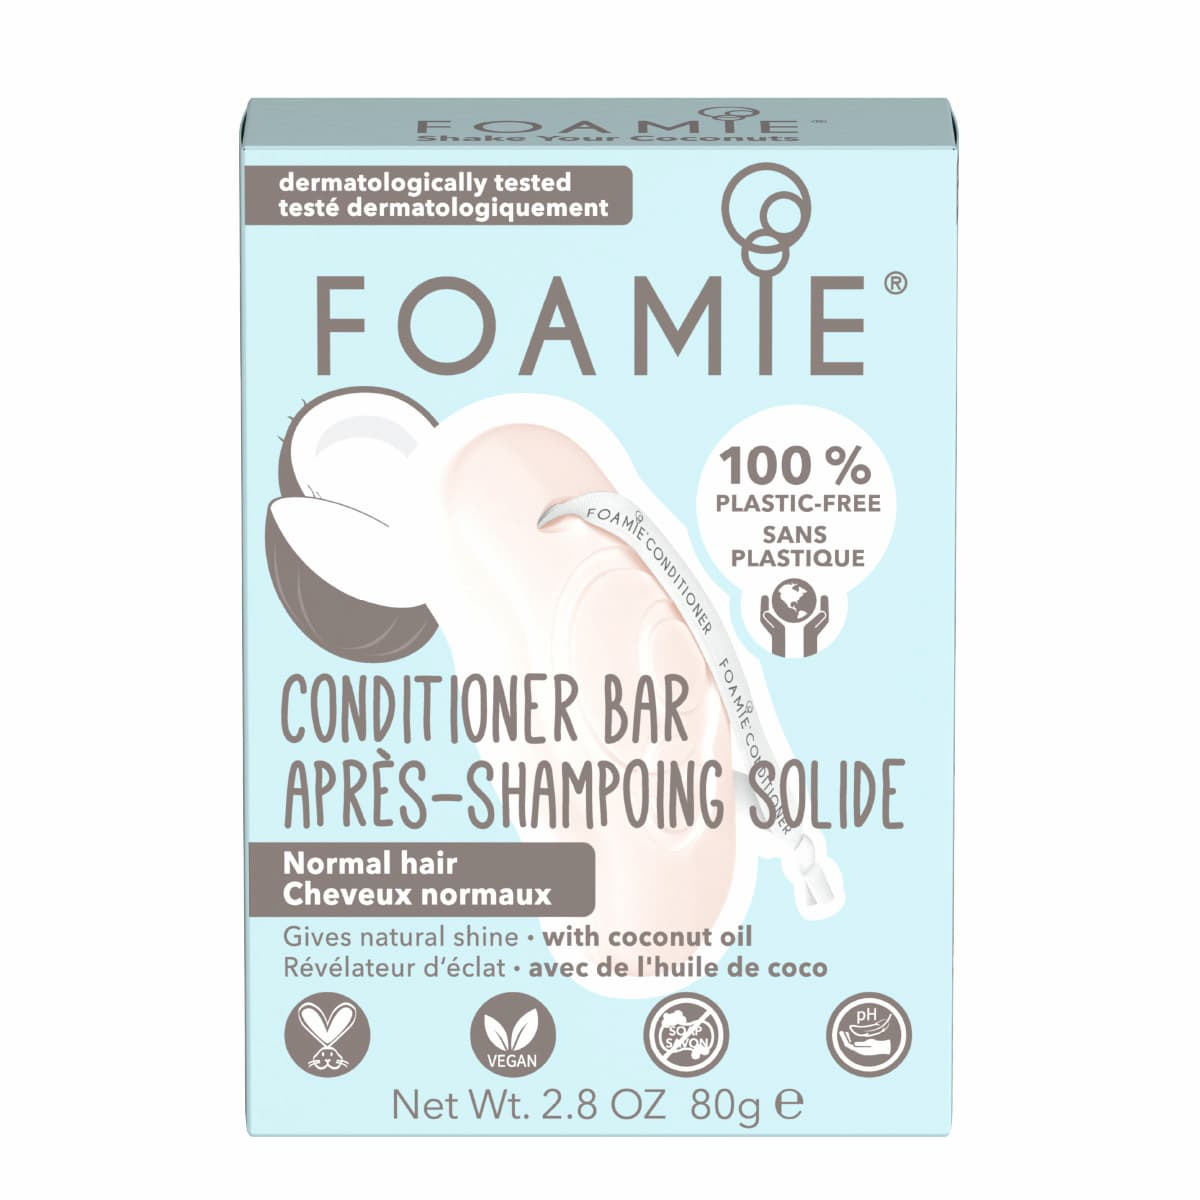 Foamie - Après-shampoing solide - Shake your Coconut